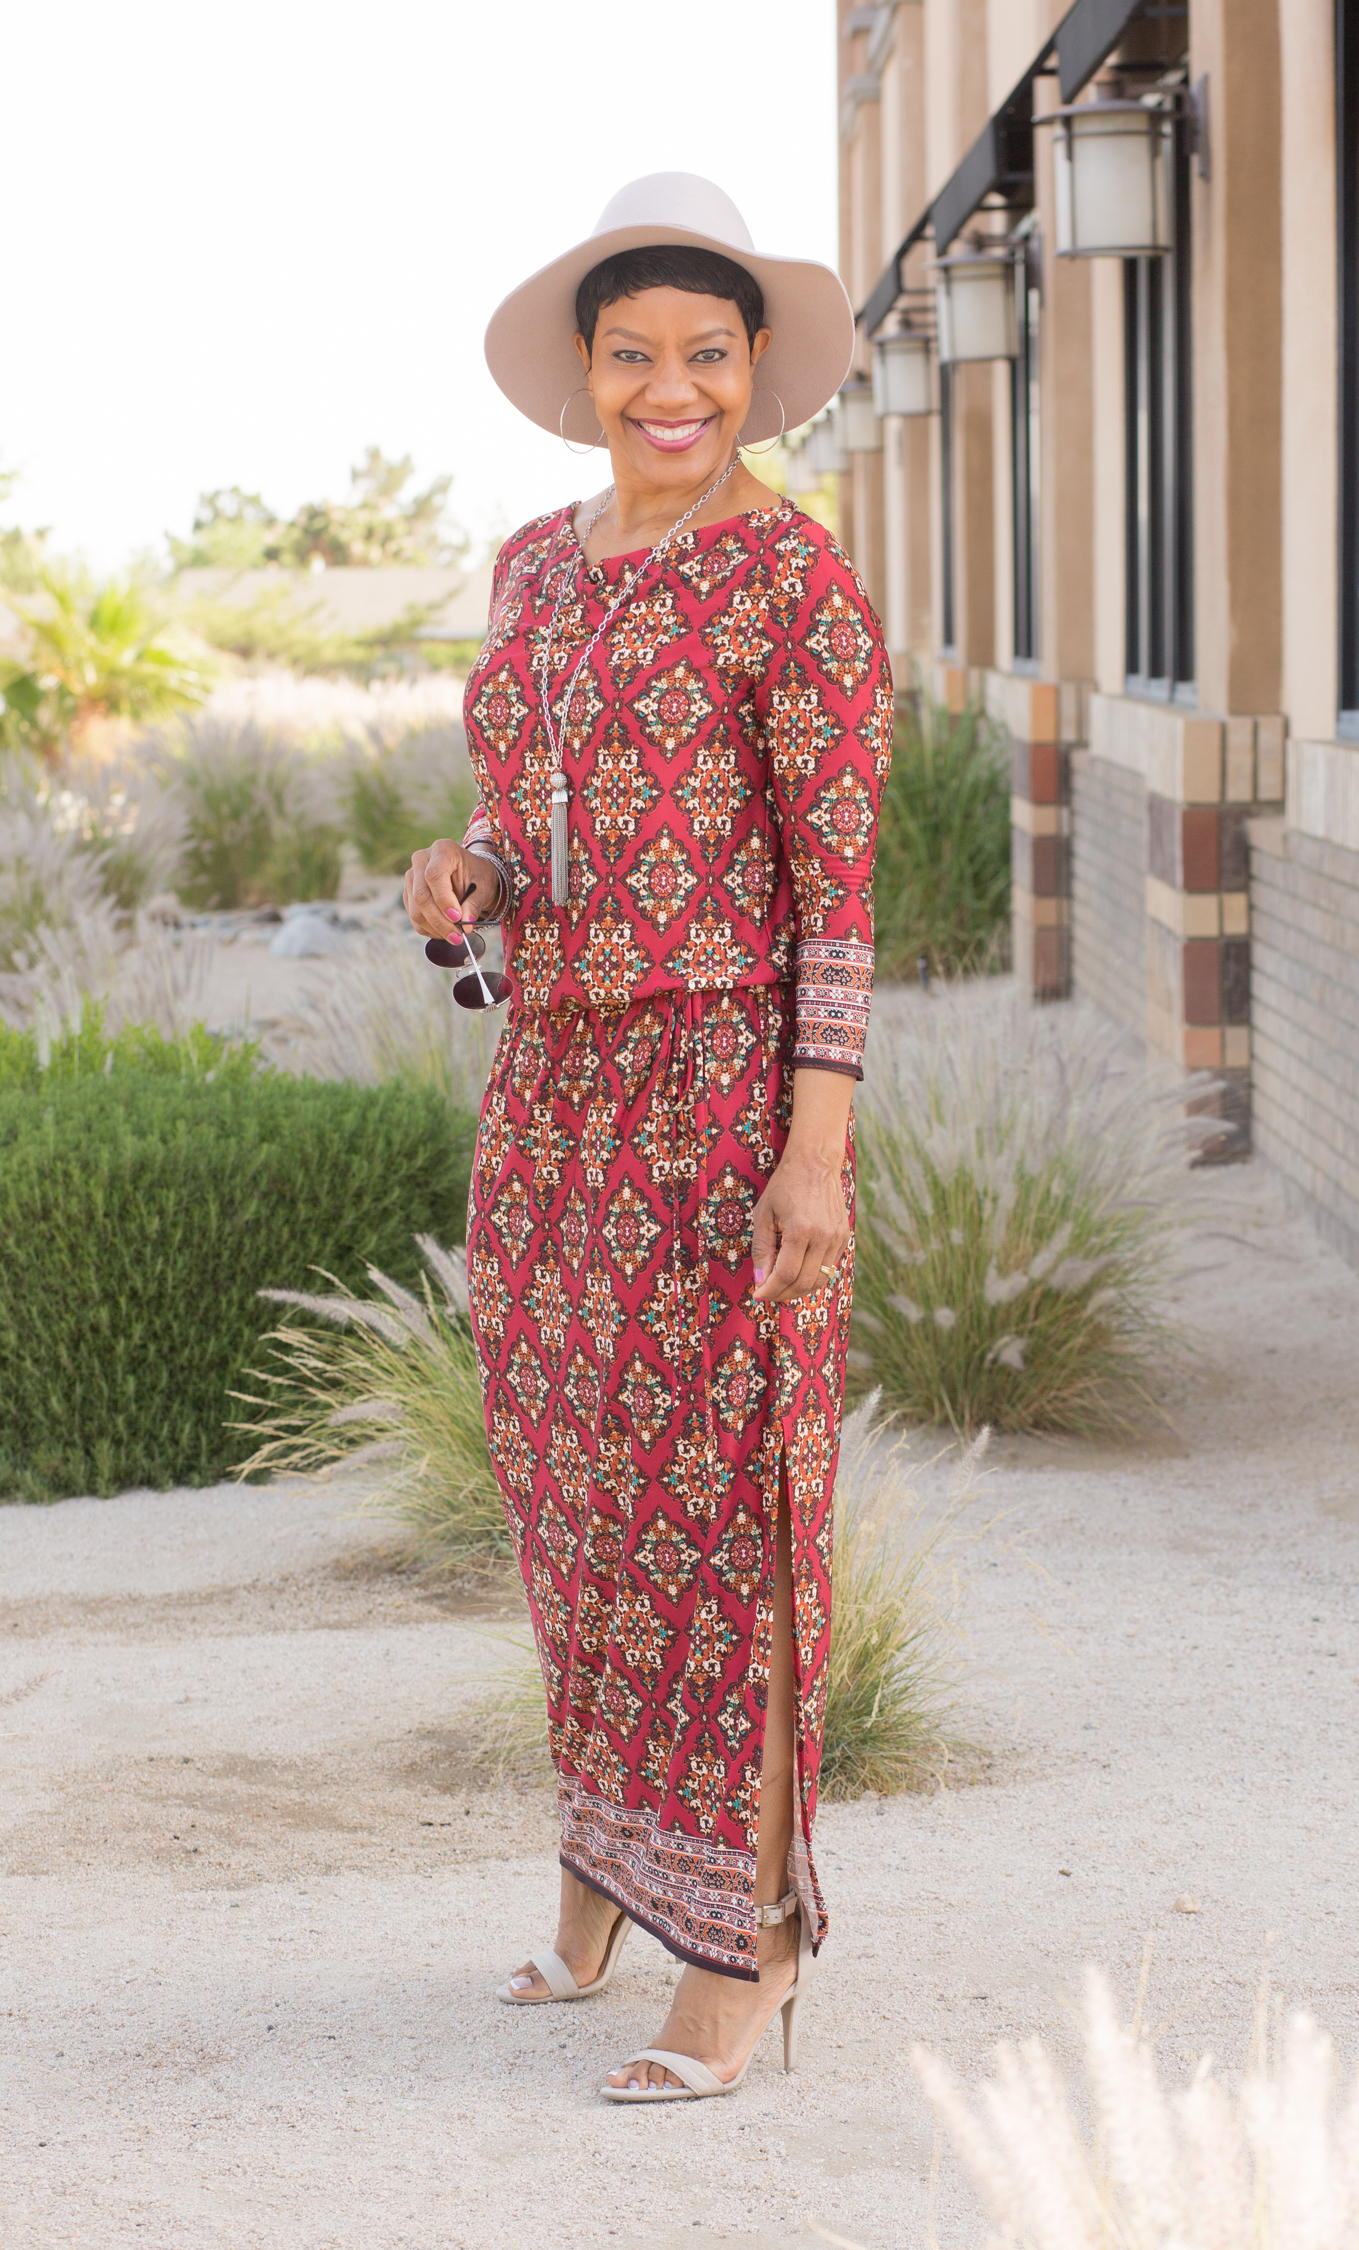 Burda-Style 6639 - Introduction to Border Prints